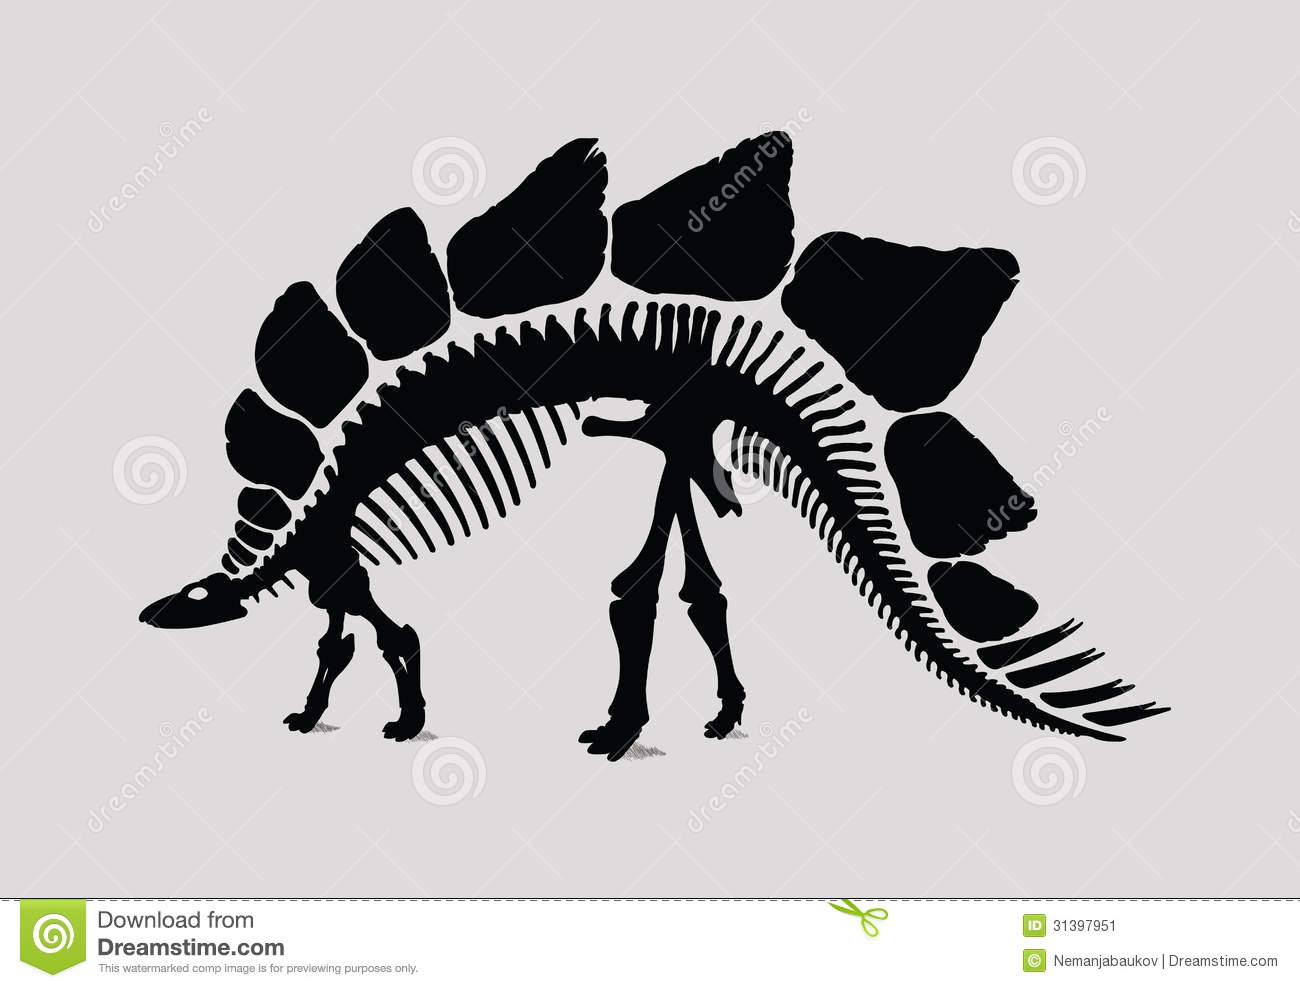 Dinosaur Skeleton Silhouette Stock Vector - Illustration of